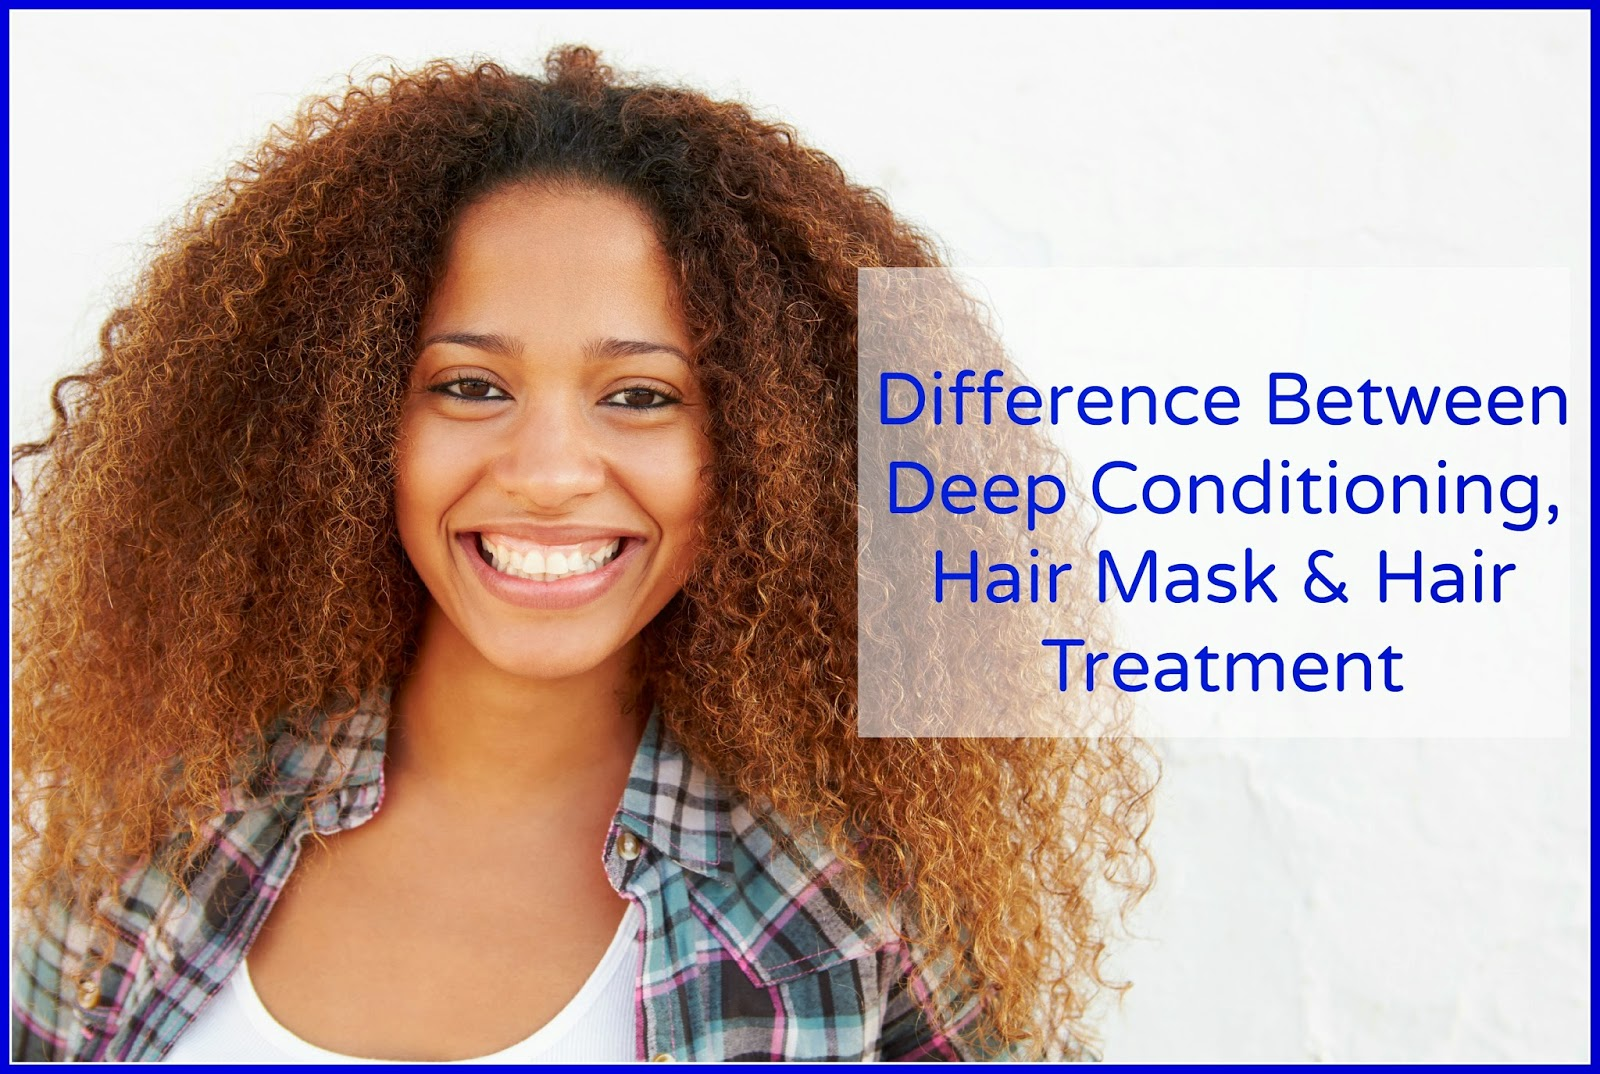 Difference Between Deep Conditioning, Hair Mask & Hair Treatment